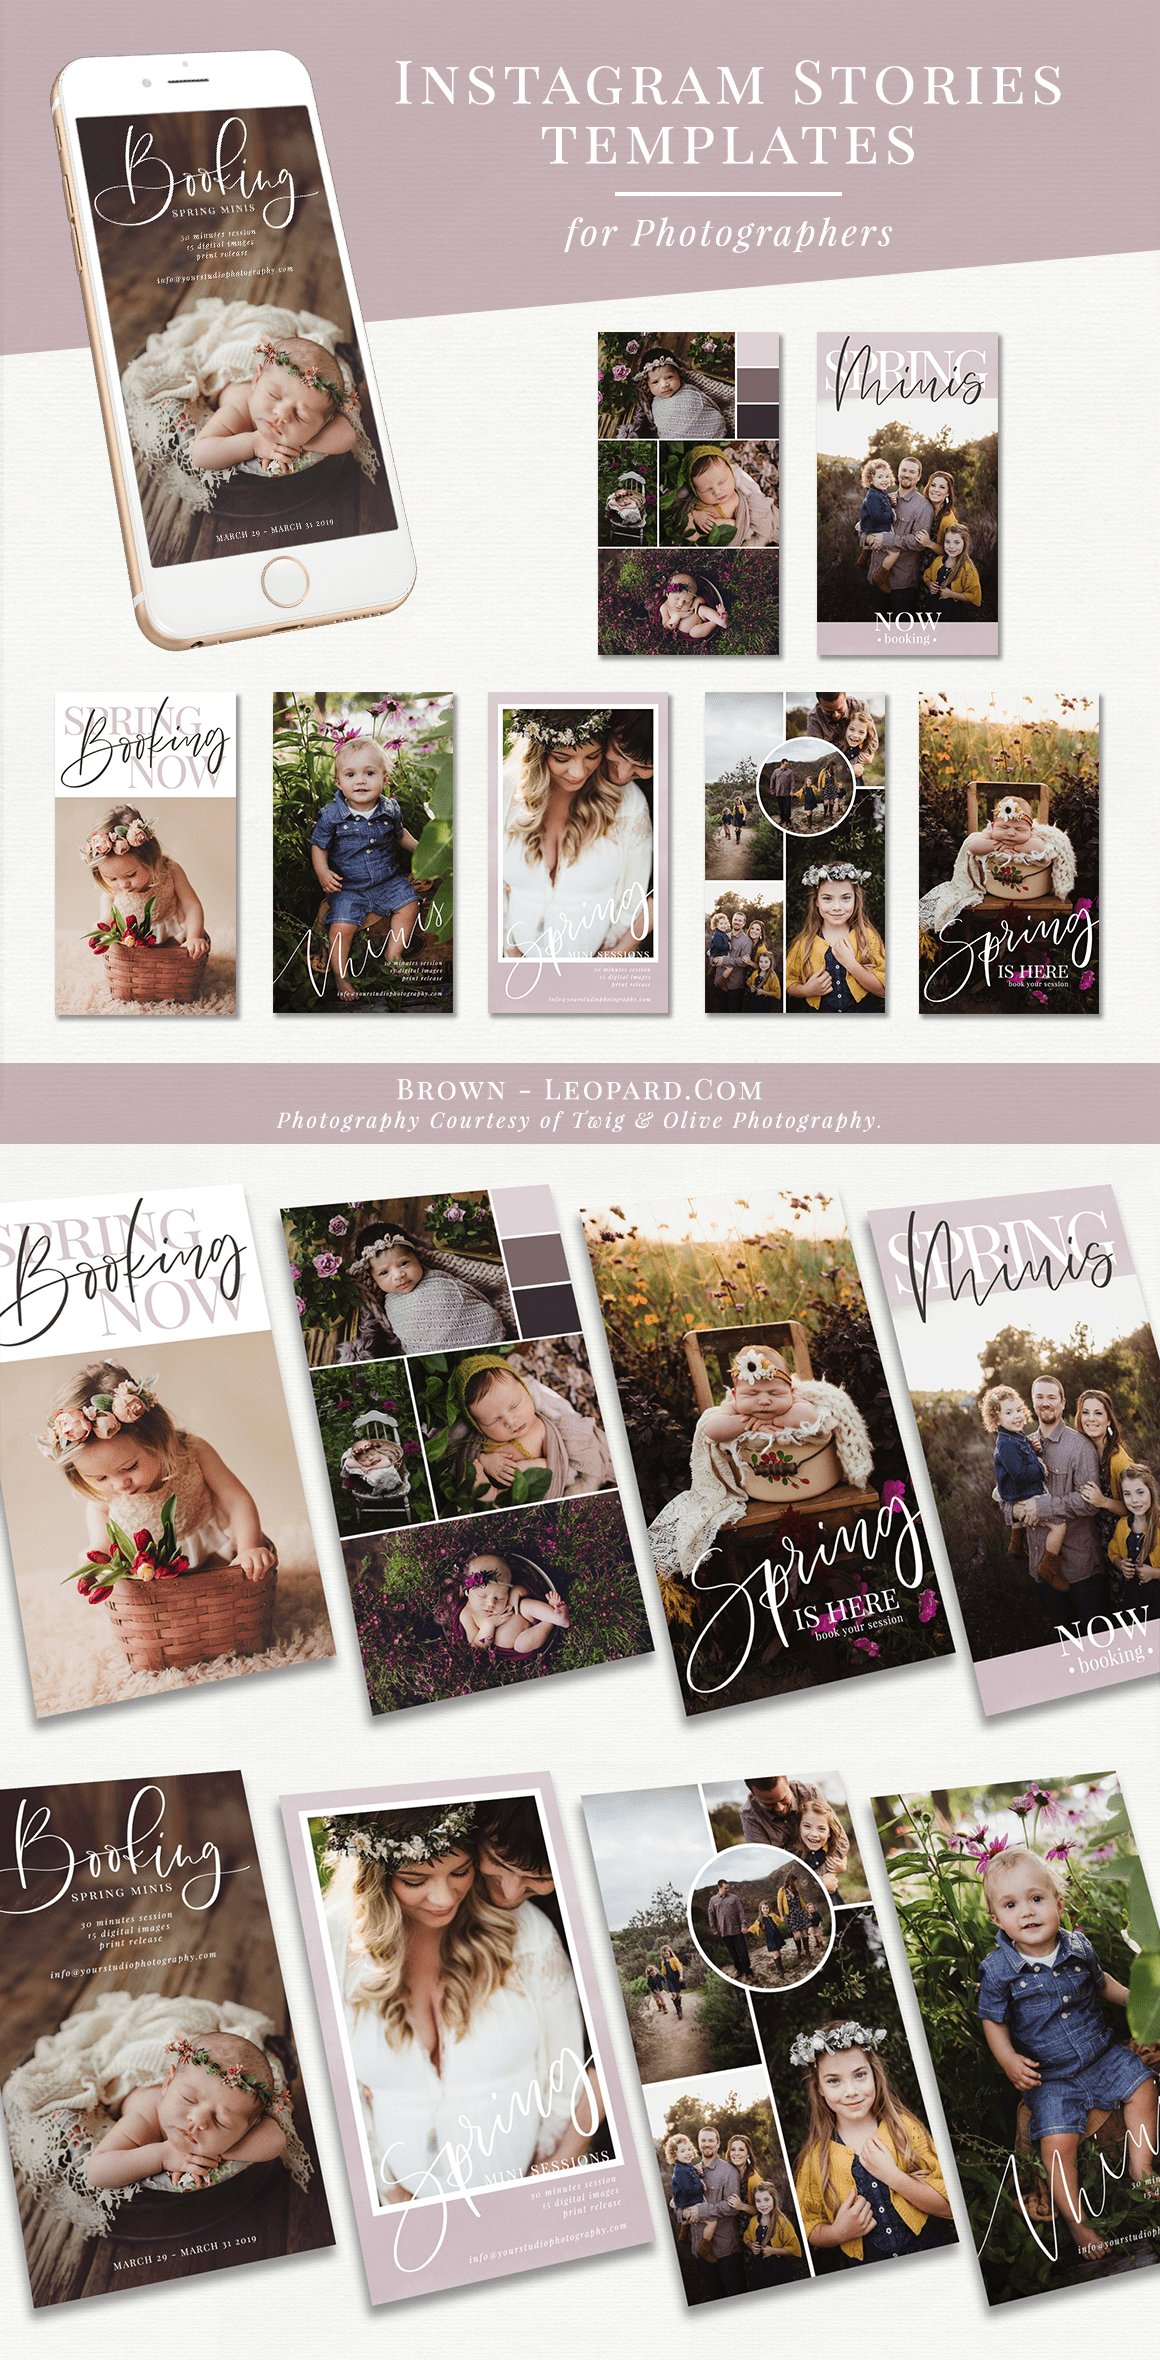 Spring minis are here! Instagram Stories templates for Photographers - spring mini sessions theme. Great marketing tool to promote your photography business on social media, boost your service, offers & special sales. Customizable and editable layered psd files for Adobe Photoshop and Photoshop Elements - super easy to use & very fast. Digital design templates for creative photographers from Brown Leopard.